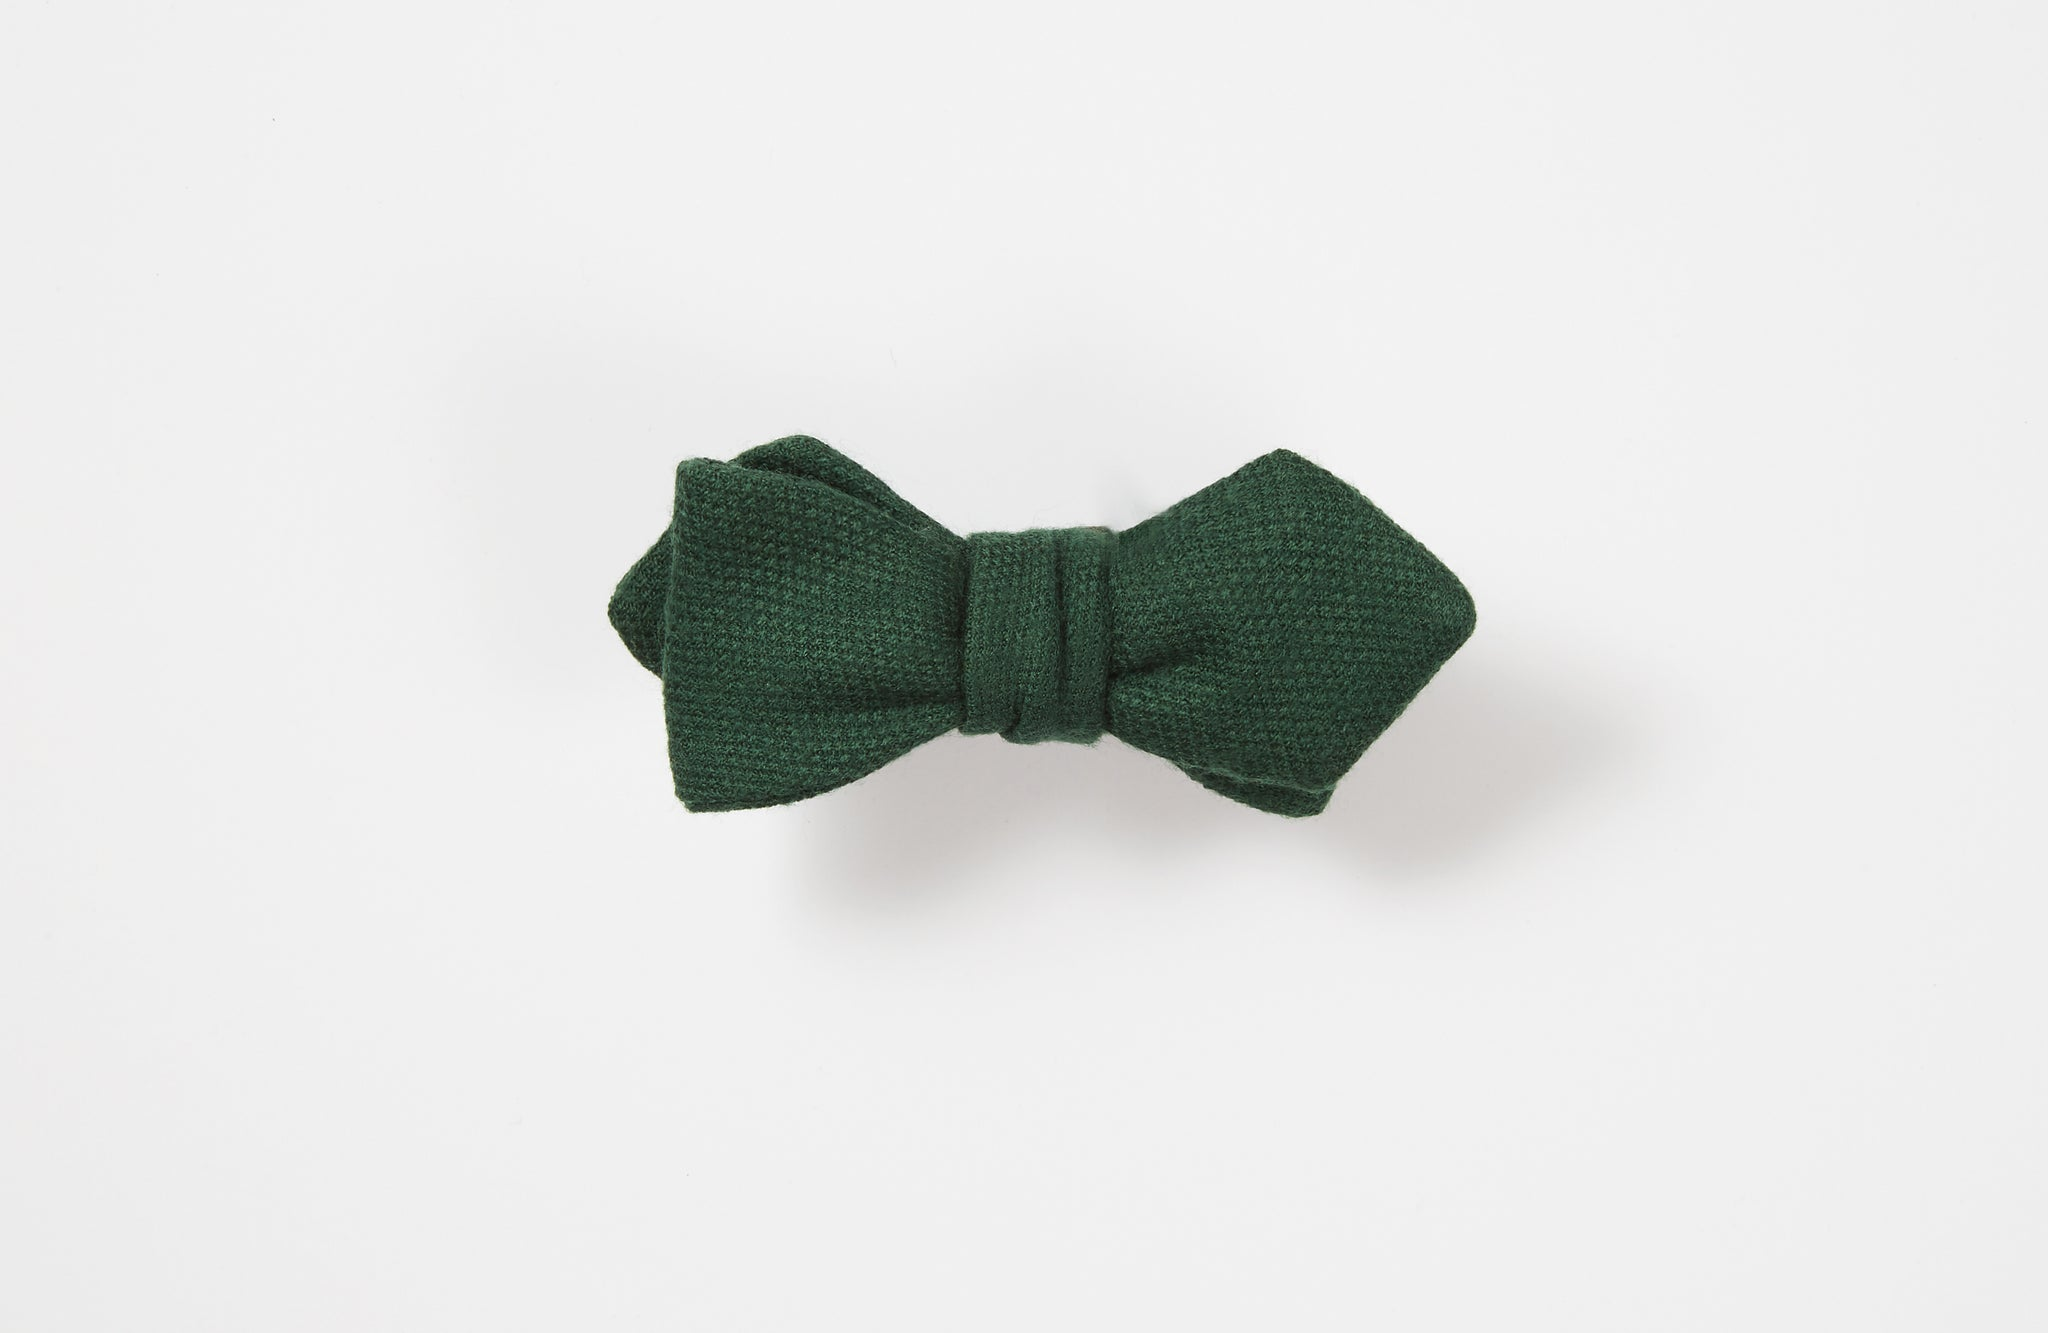 The Basket Bow Tie